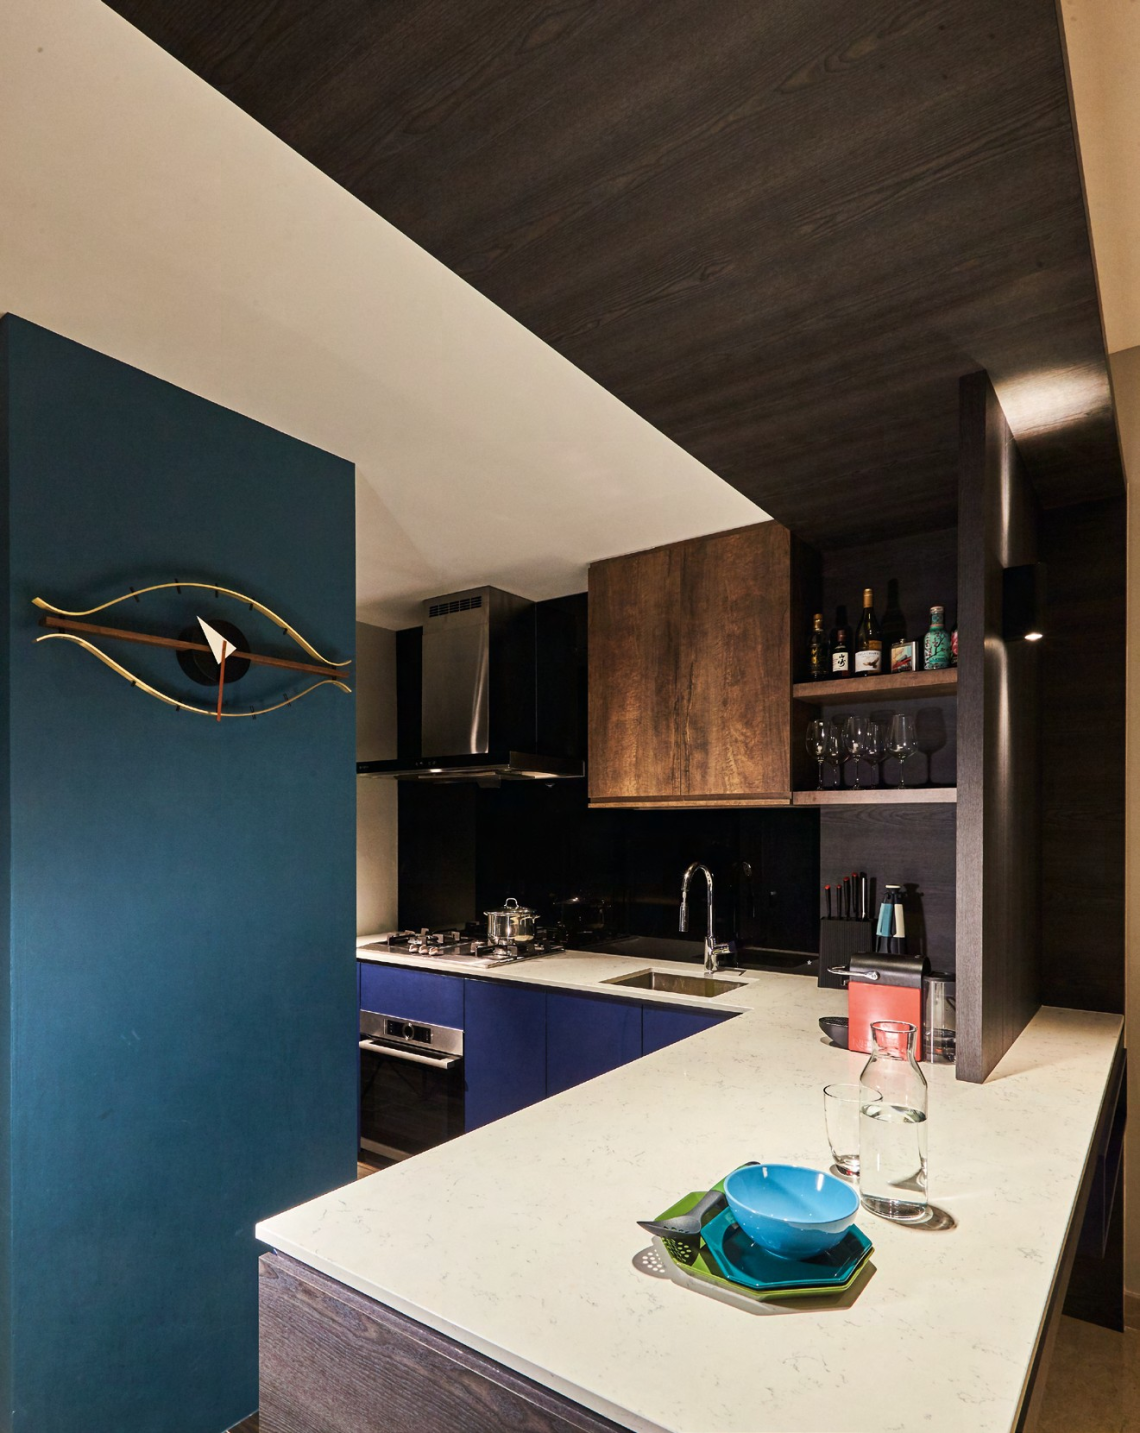 Joey replaced the original floor tiles with wooden tiles in a colour similar to American Walnut, which complements the dark blue laminates of the kitchen cabinets.